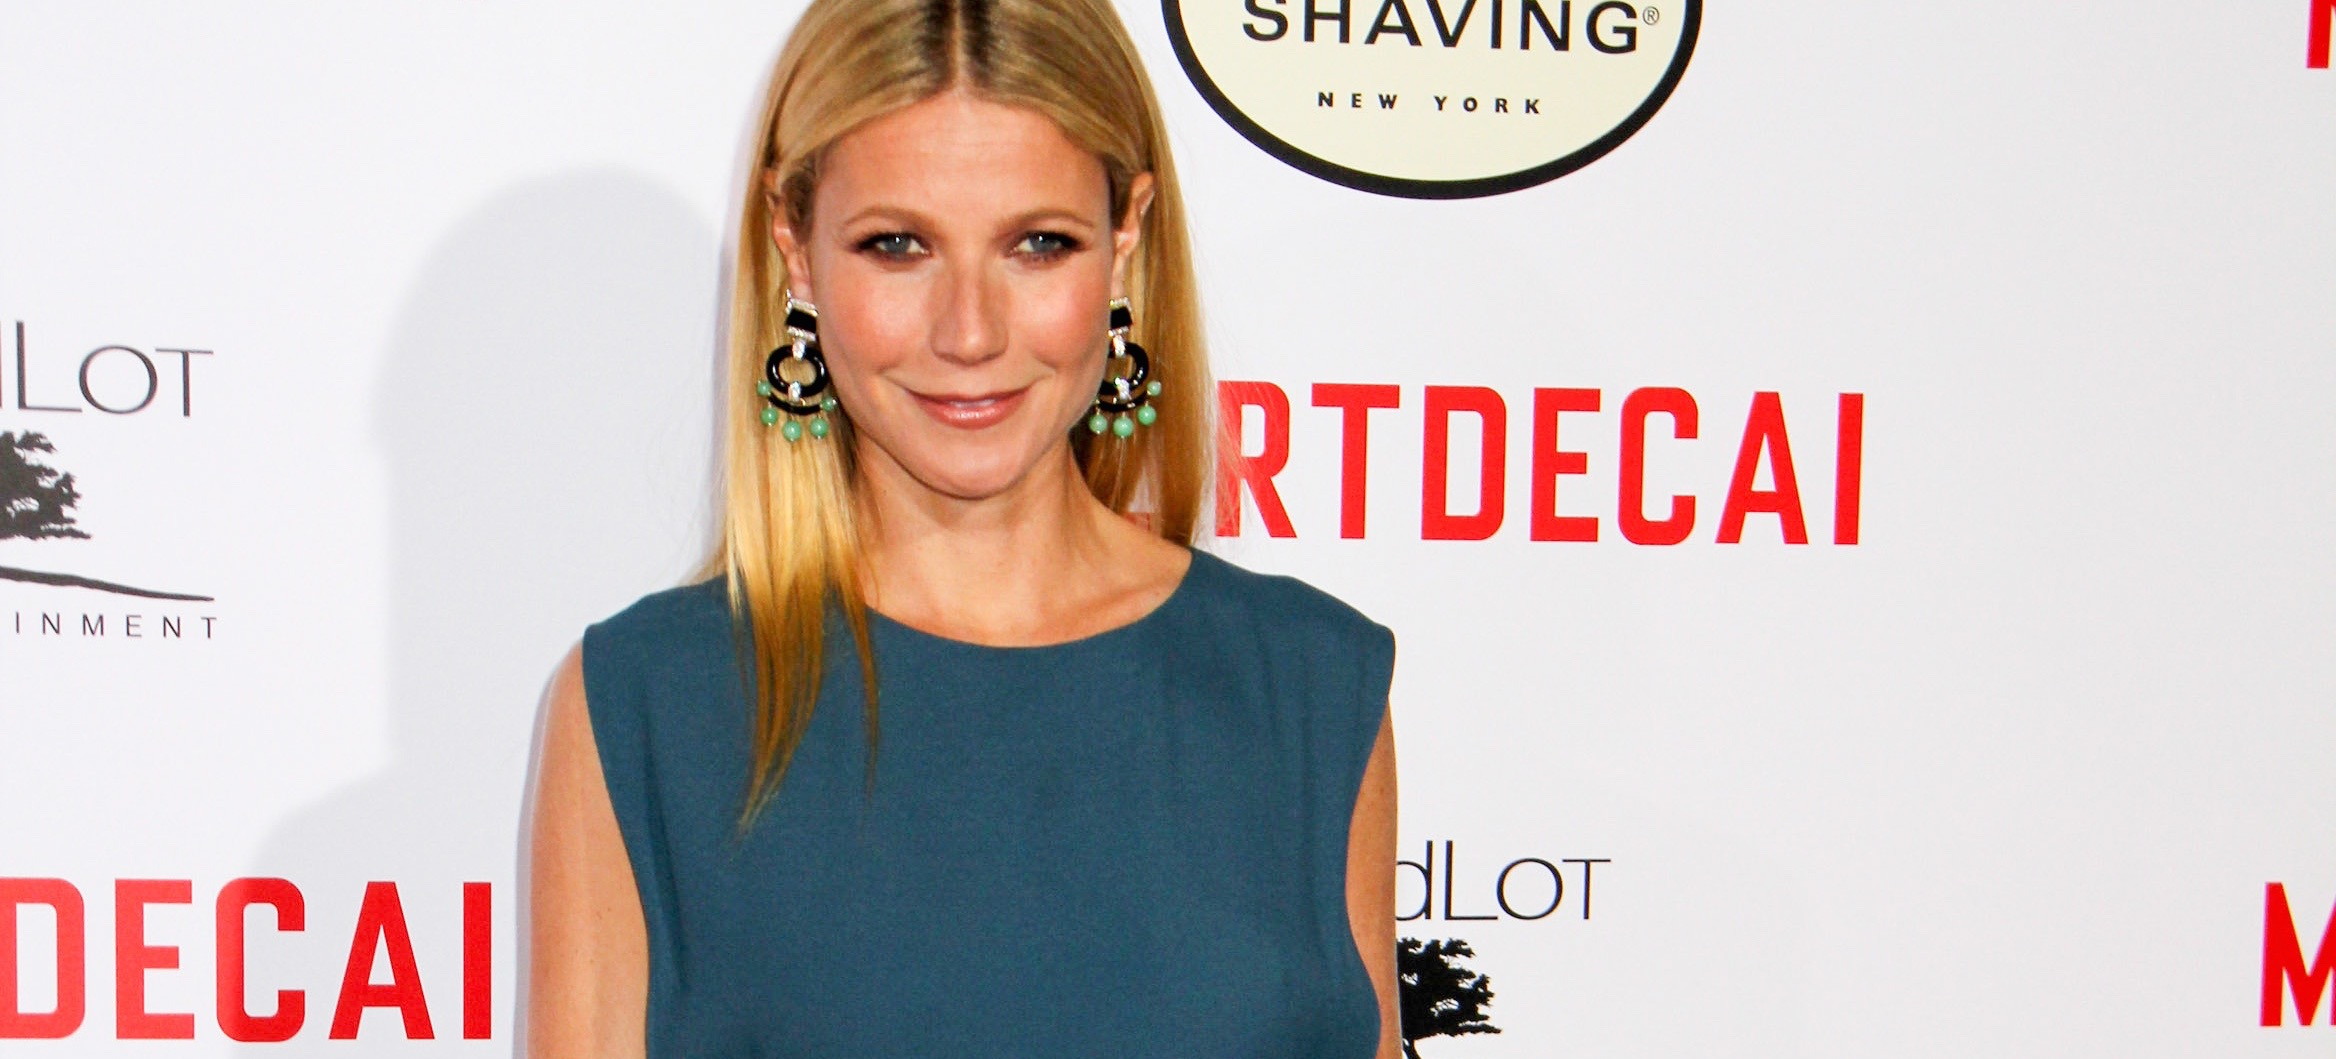 Coming Soon: Goop's All-Natural Beauty Line!